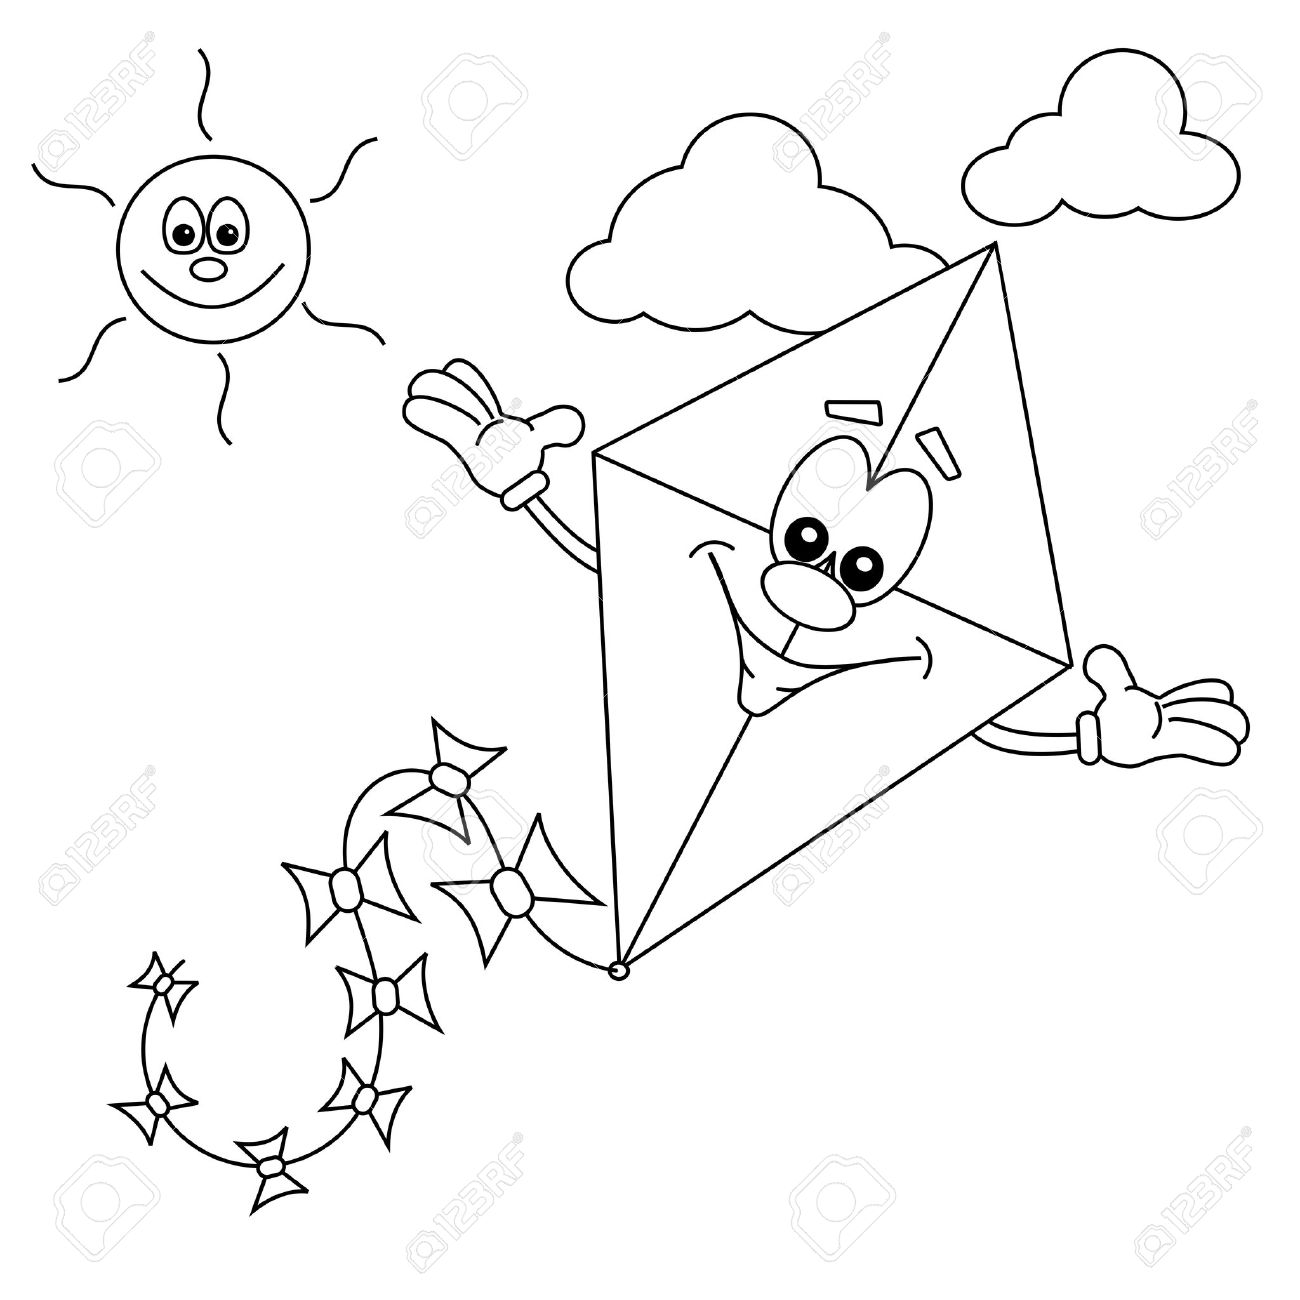 30 Top For Drawing Kite Cartoon Images